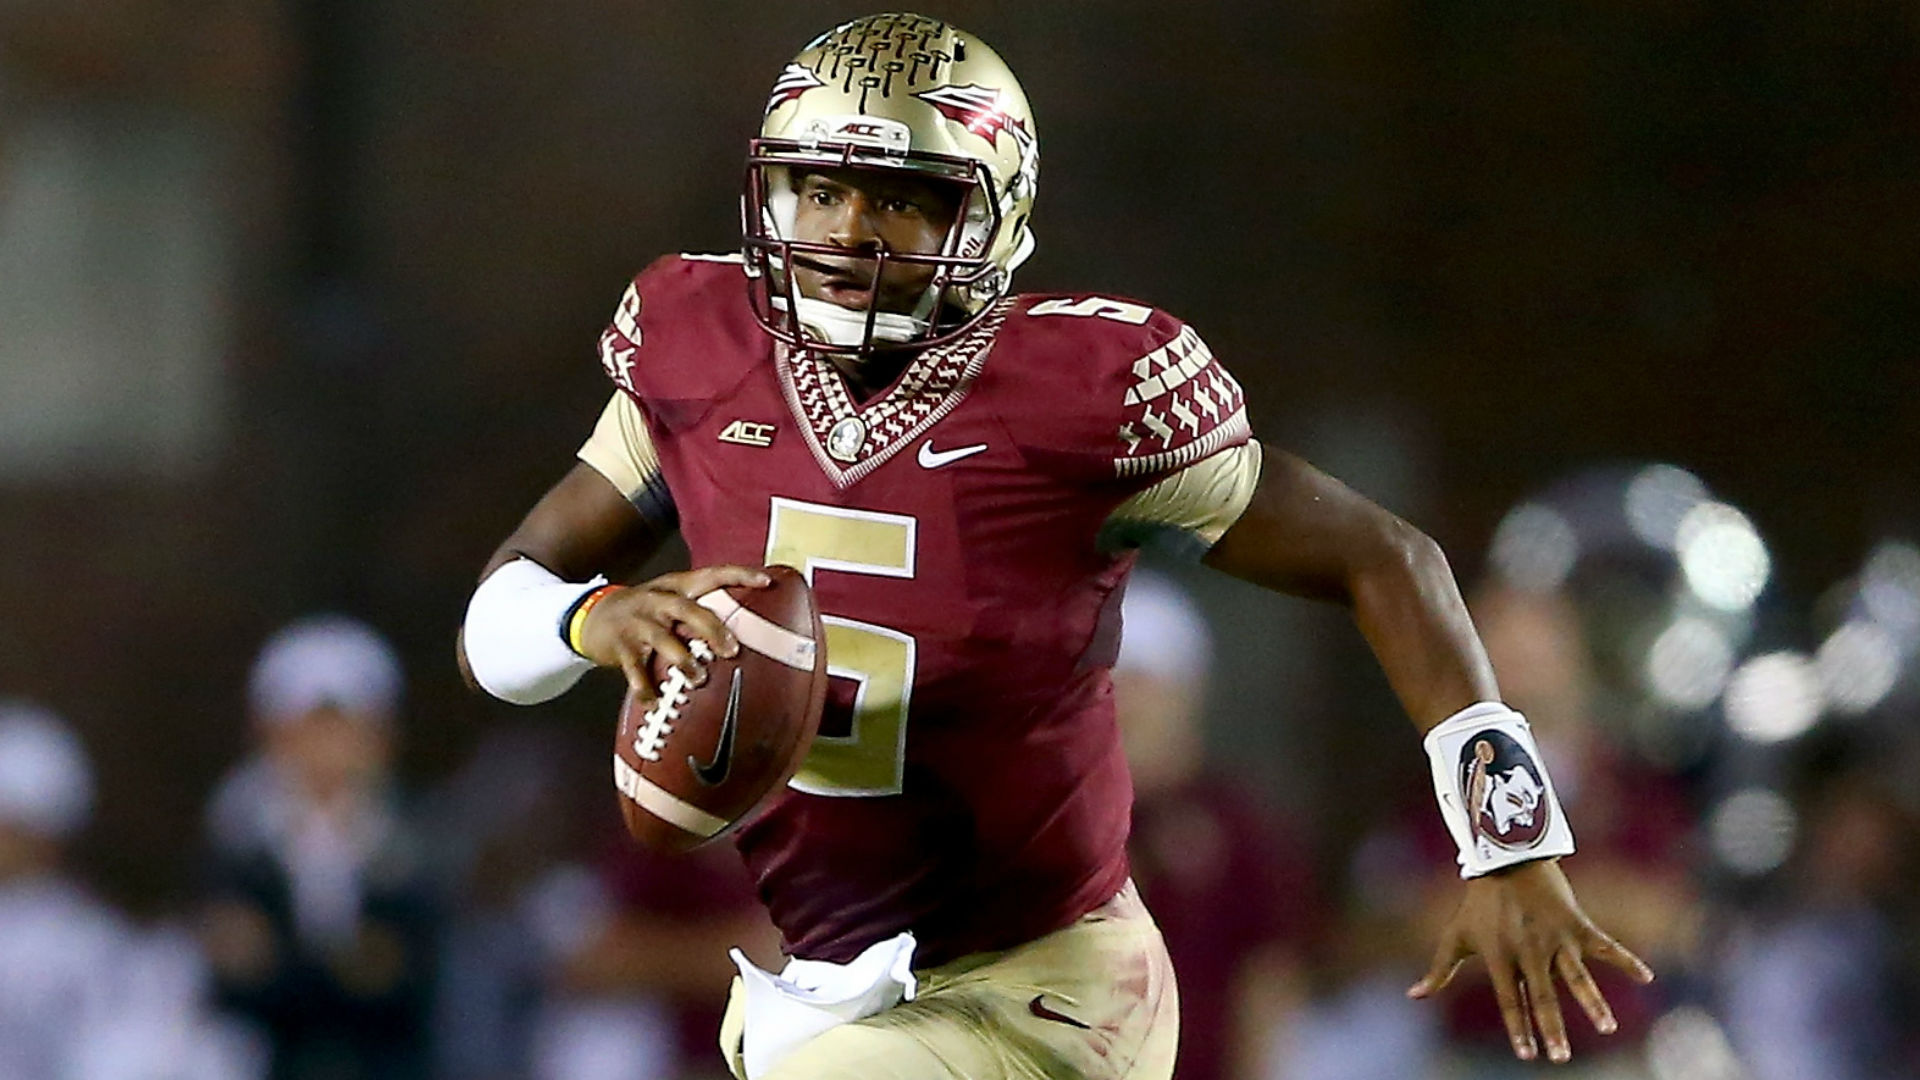 Florida vs. Florida State betting preview and pick - Seminoles continue to play with fire